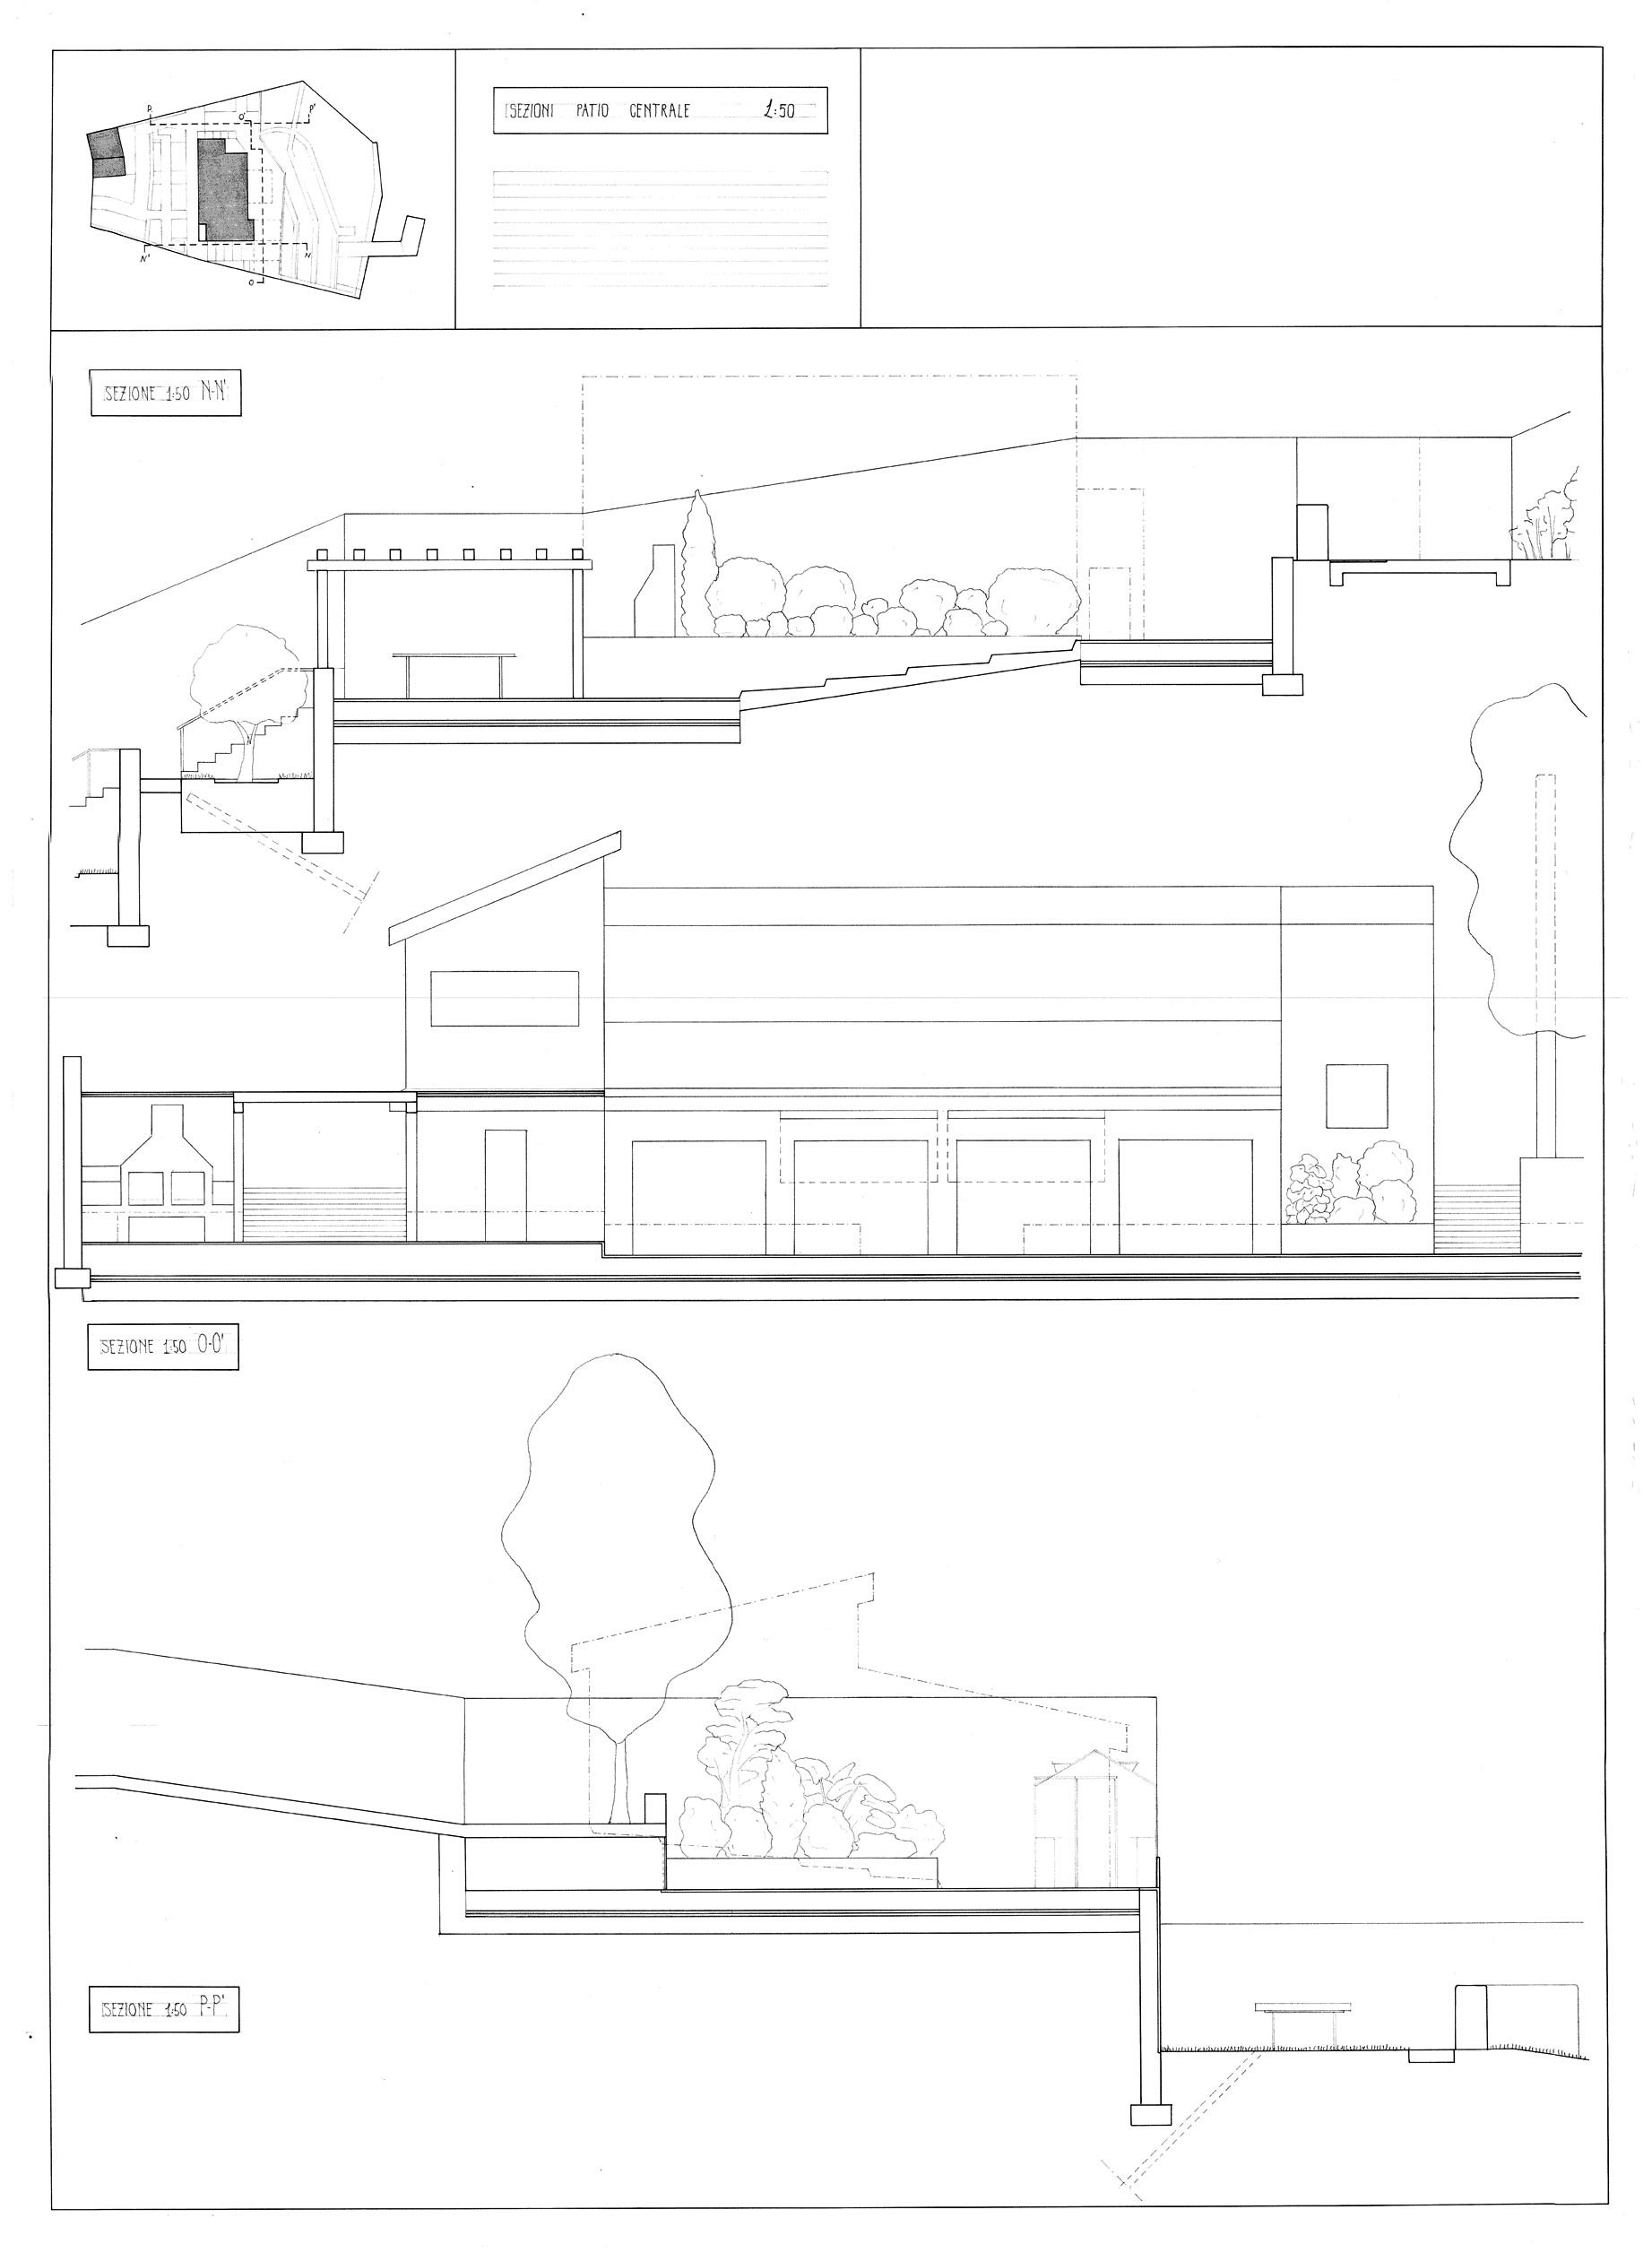 Cross-sections 2